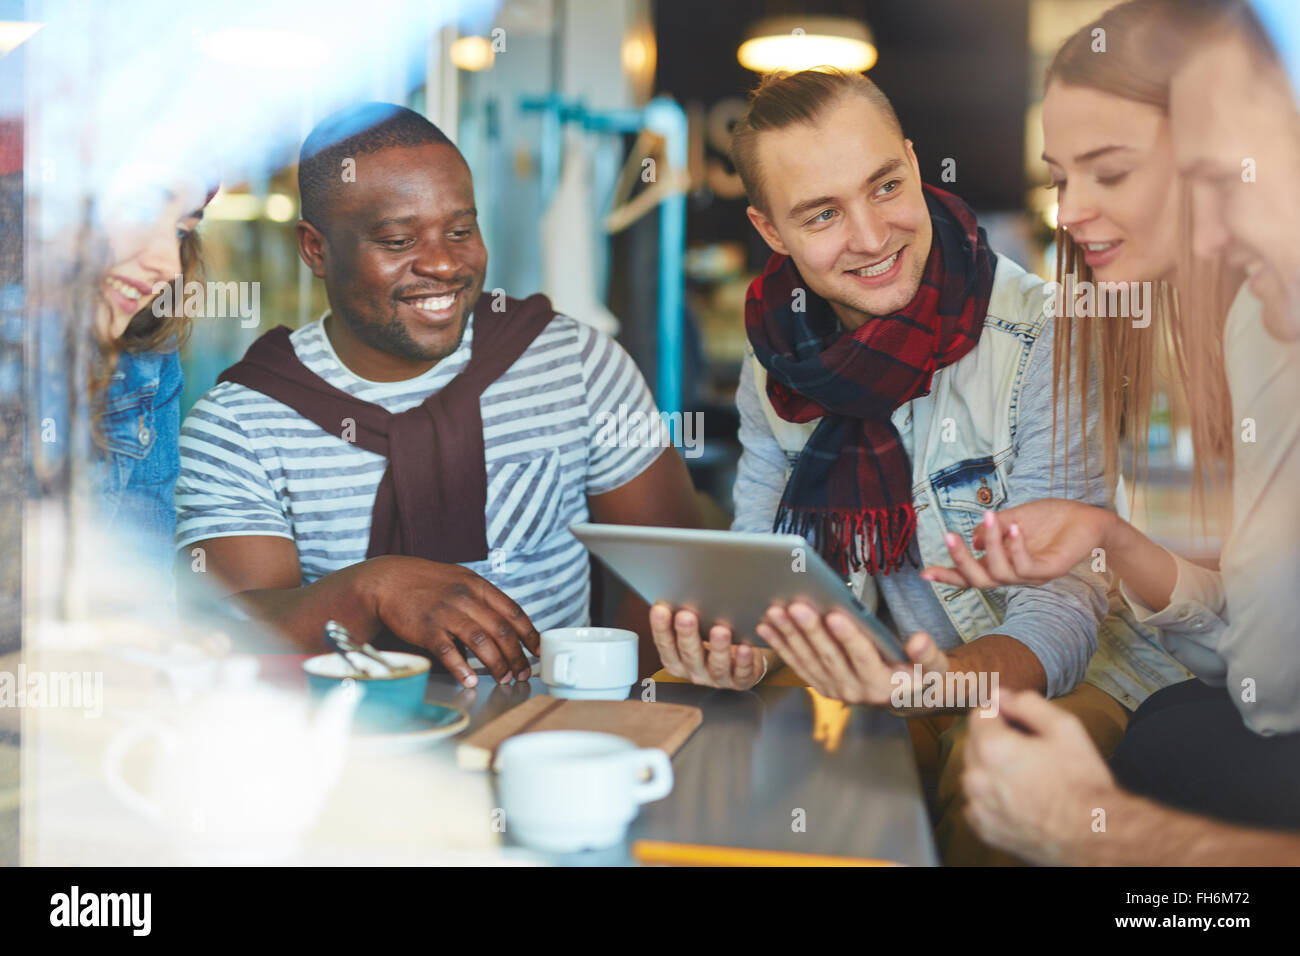 Friendly guys and girls networking and discussing data in cafe - Stock Image